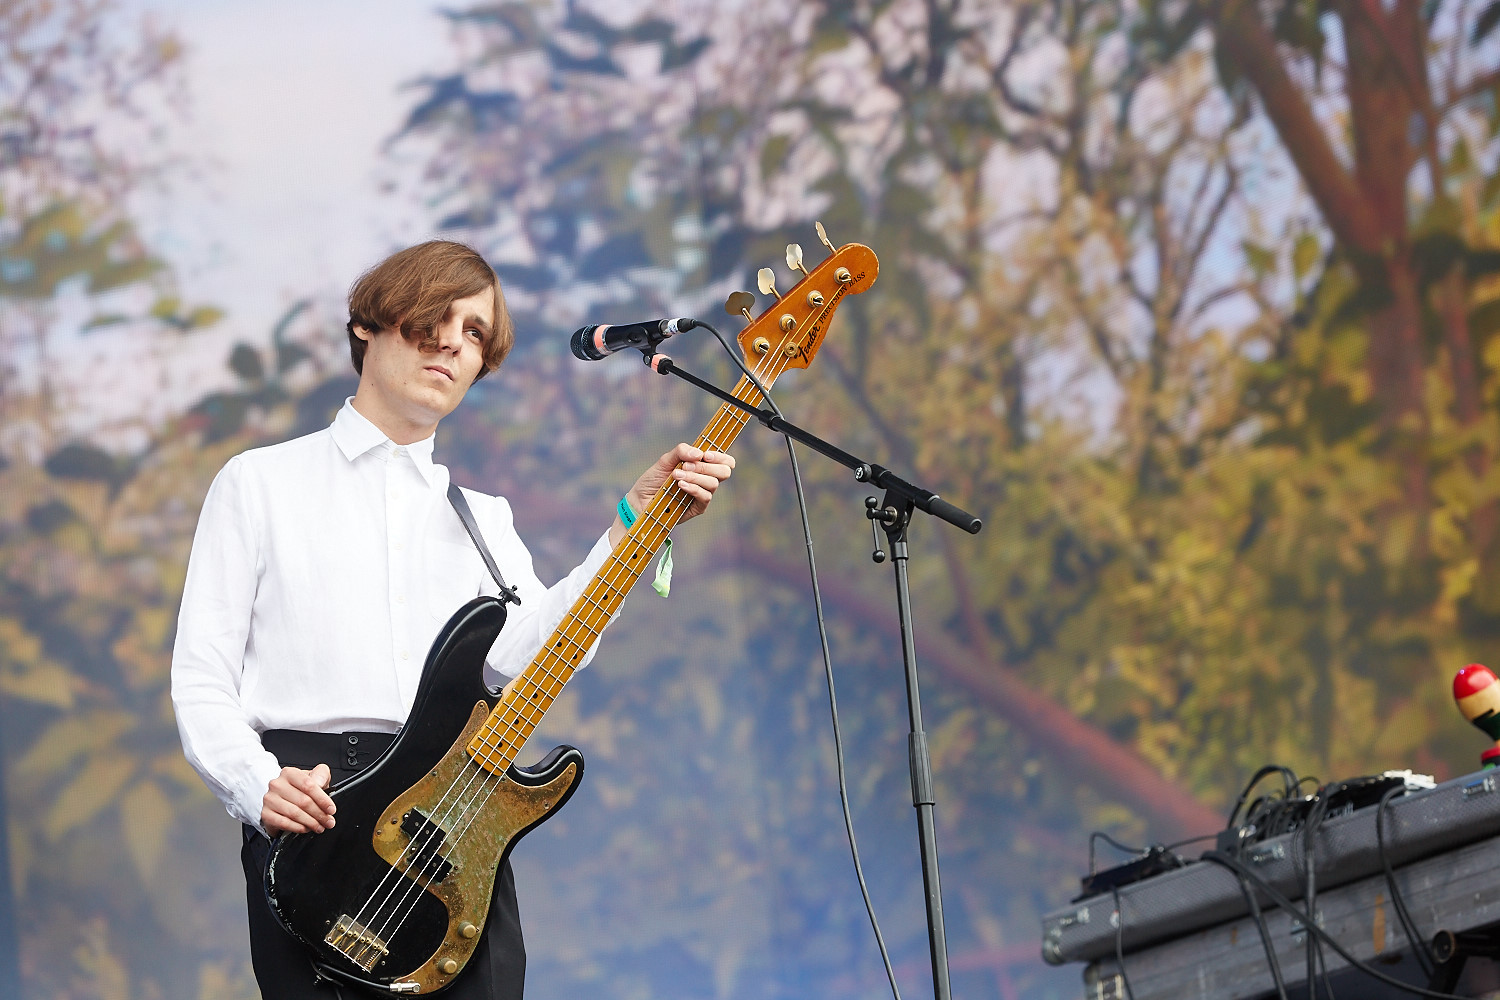 20th June 2015. The Horrors Barclaycard British Summertime in London's Hyde Park.